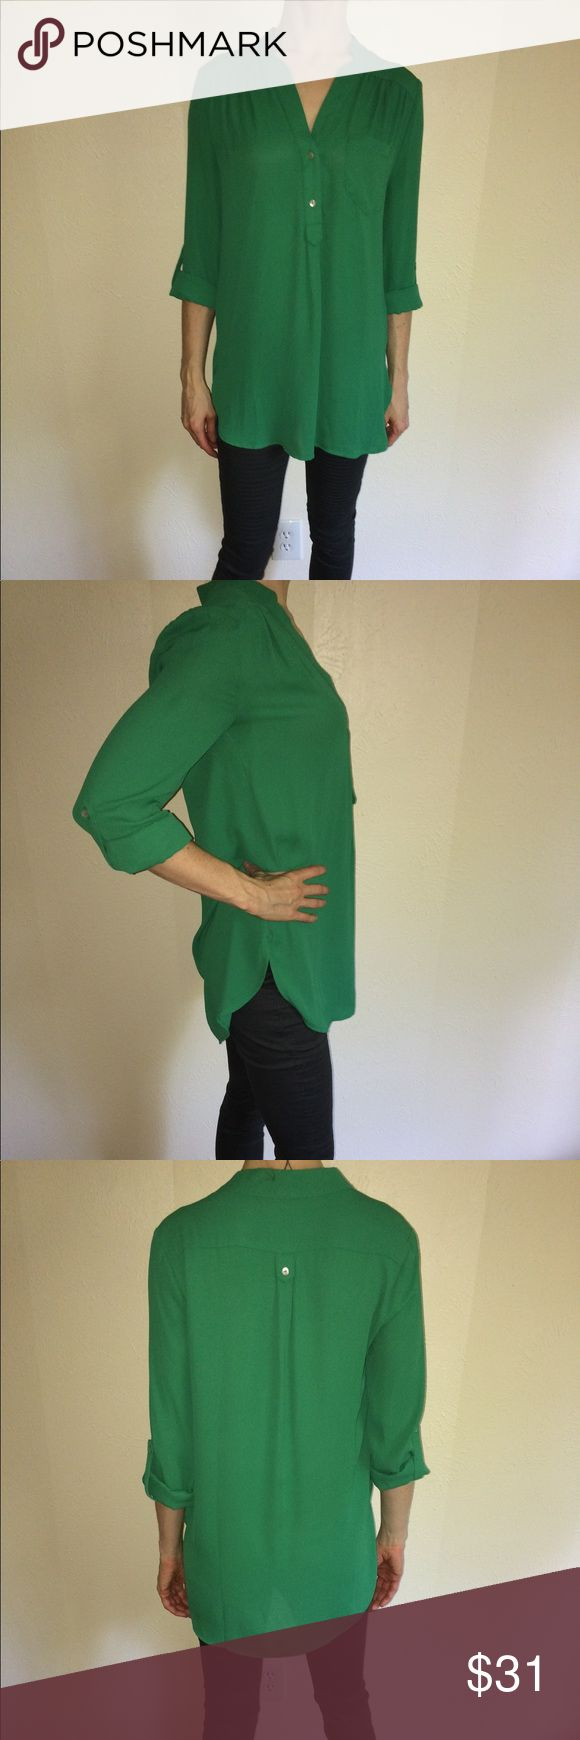 ModCloth Pam Breeze-ly Long Sleeve Tunic in green This vibrant green tunic is adorable loose over skinny jeans/leggings or tucked into a pencil skirt for a blousy effect. Or throw on a cute belt to flatter the waist! Sleeves can be worn long or rolled high for a more casual look. 100% Polyester. Hand wash. Front button closure. Button closure at sleeve cuff. Chest pocket. Interesting cut detail at neck flatters collarbones. Decorative tab at back with button. Perfect condition; worn once…